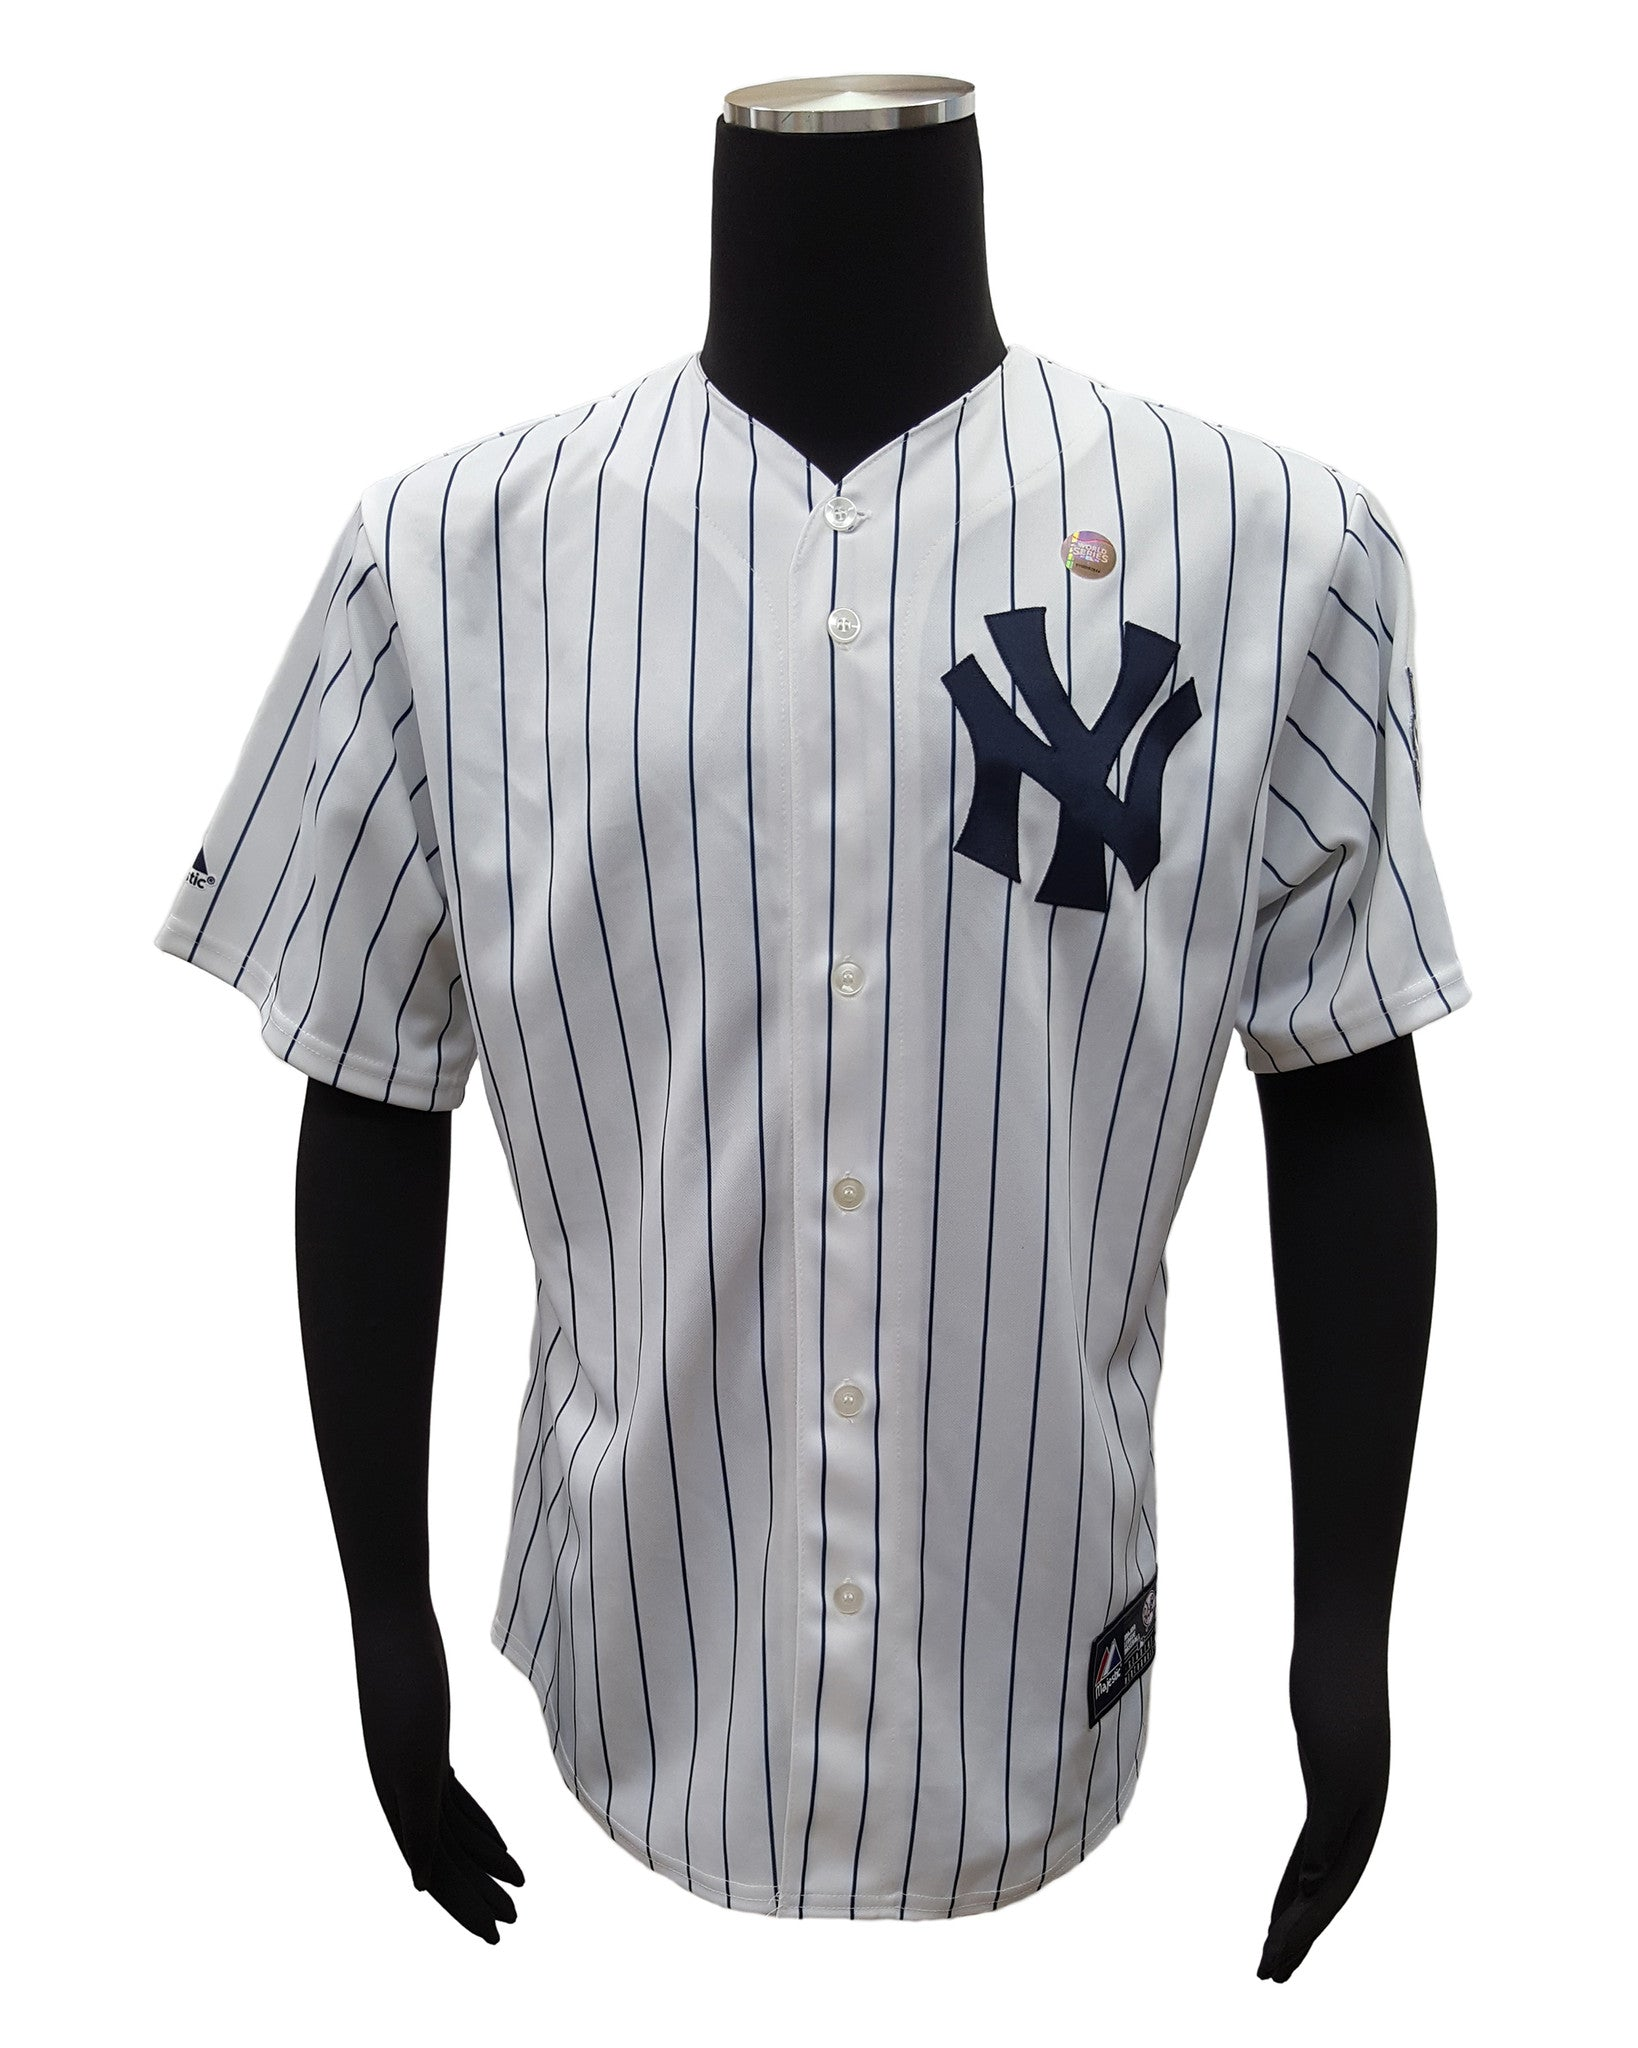 best sneakers e7686 ceaf1 Majestic New York Yankees Replica Mark Teixeira Home Jersey w/2009 World  Series Patch